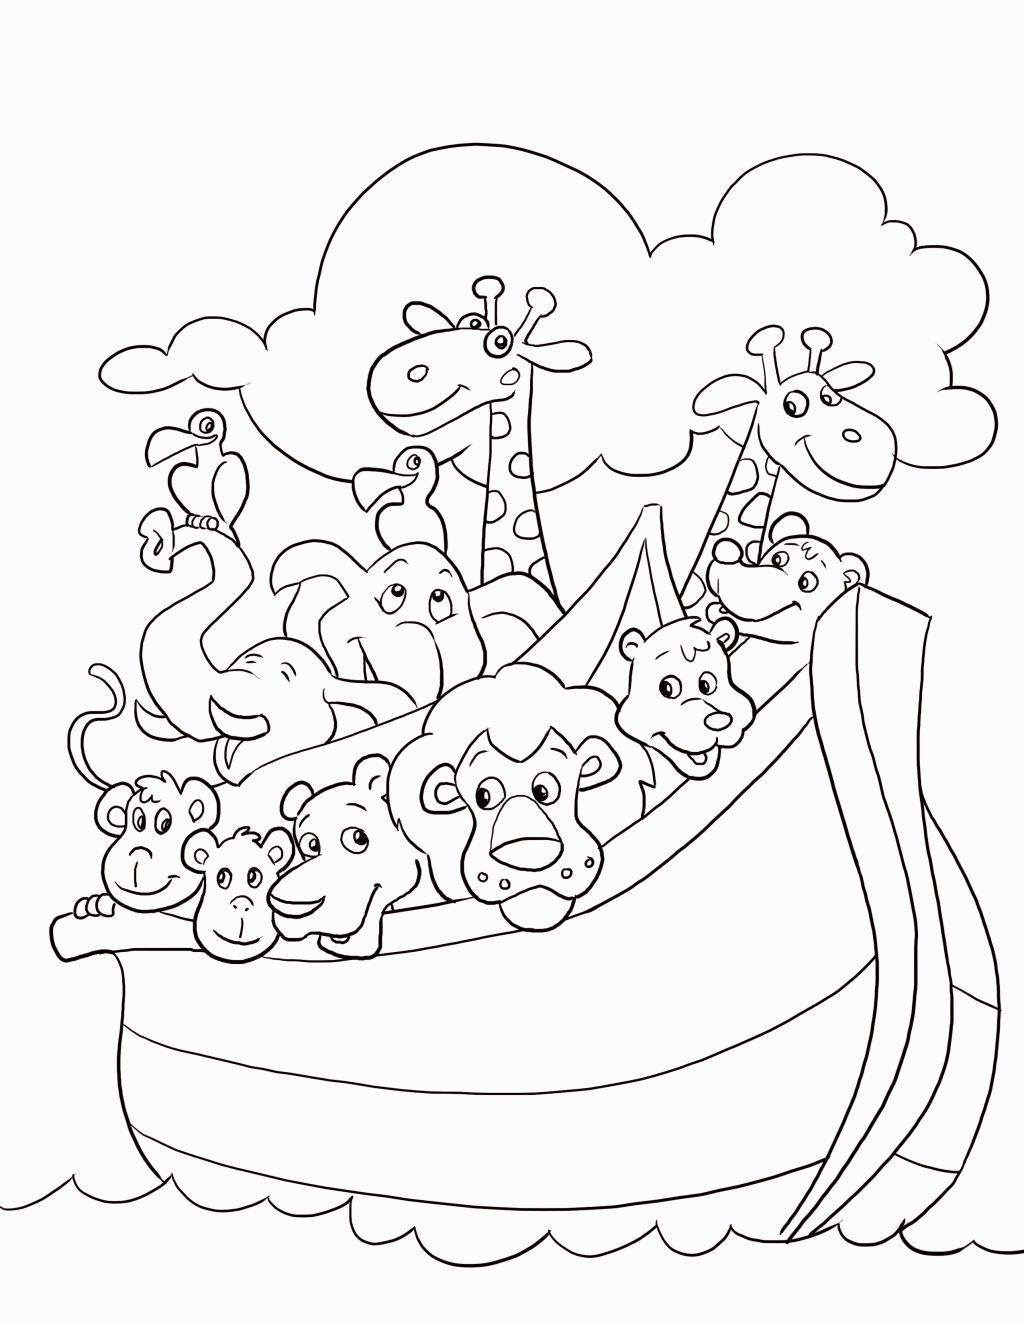 Christian Coloring Pages For Preschoolers | Sunday school ... | bible coloring pages for preschoolers